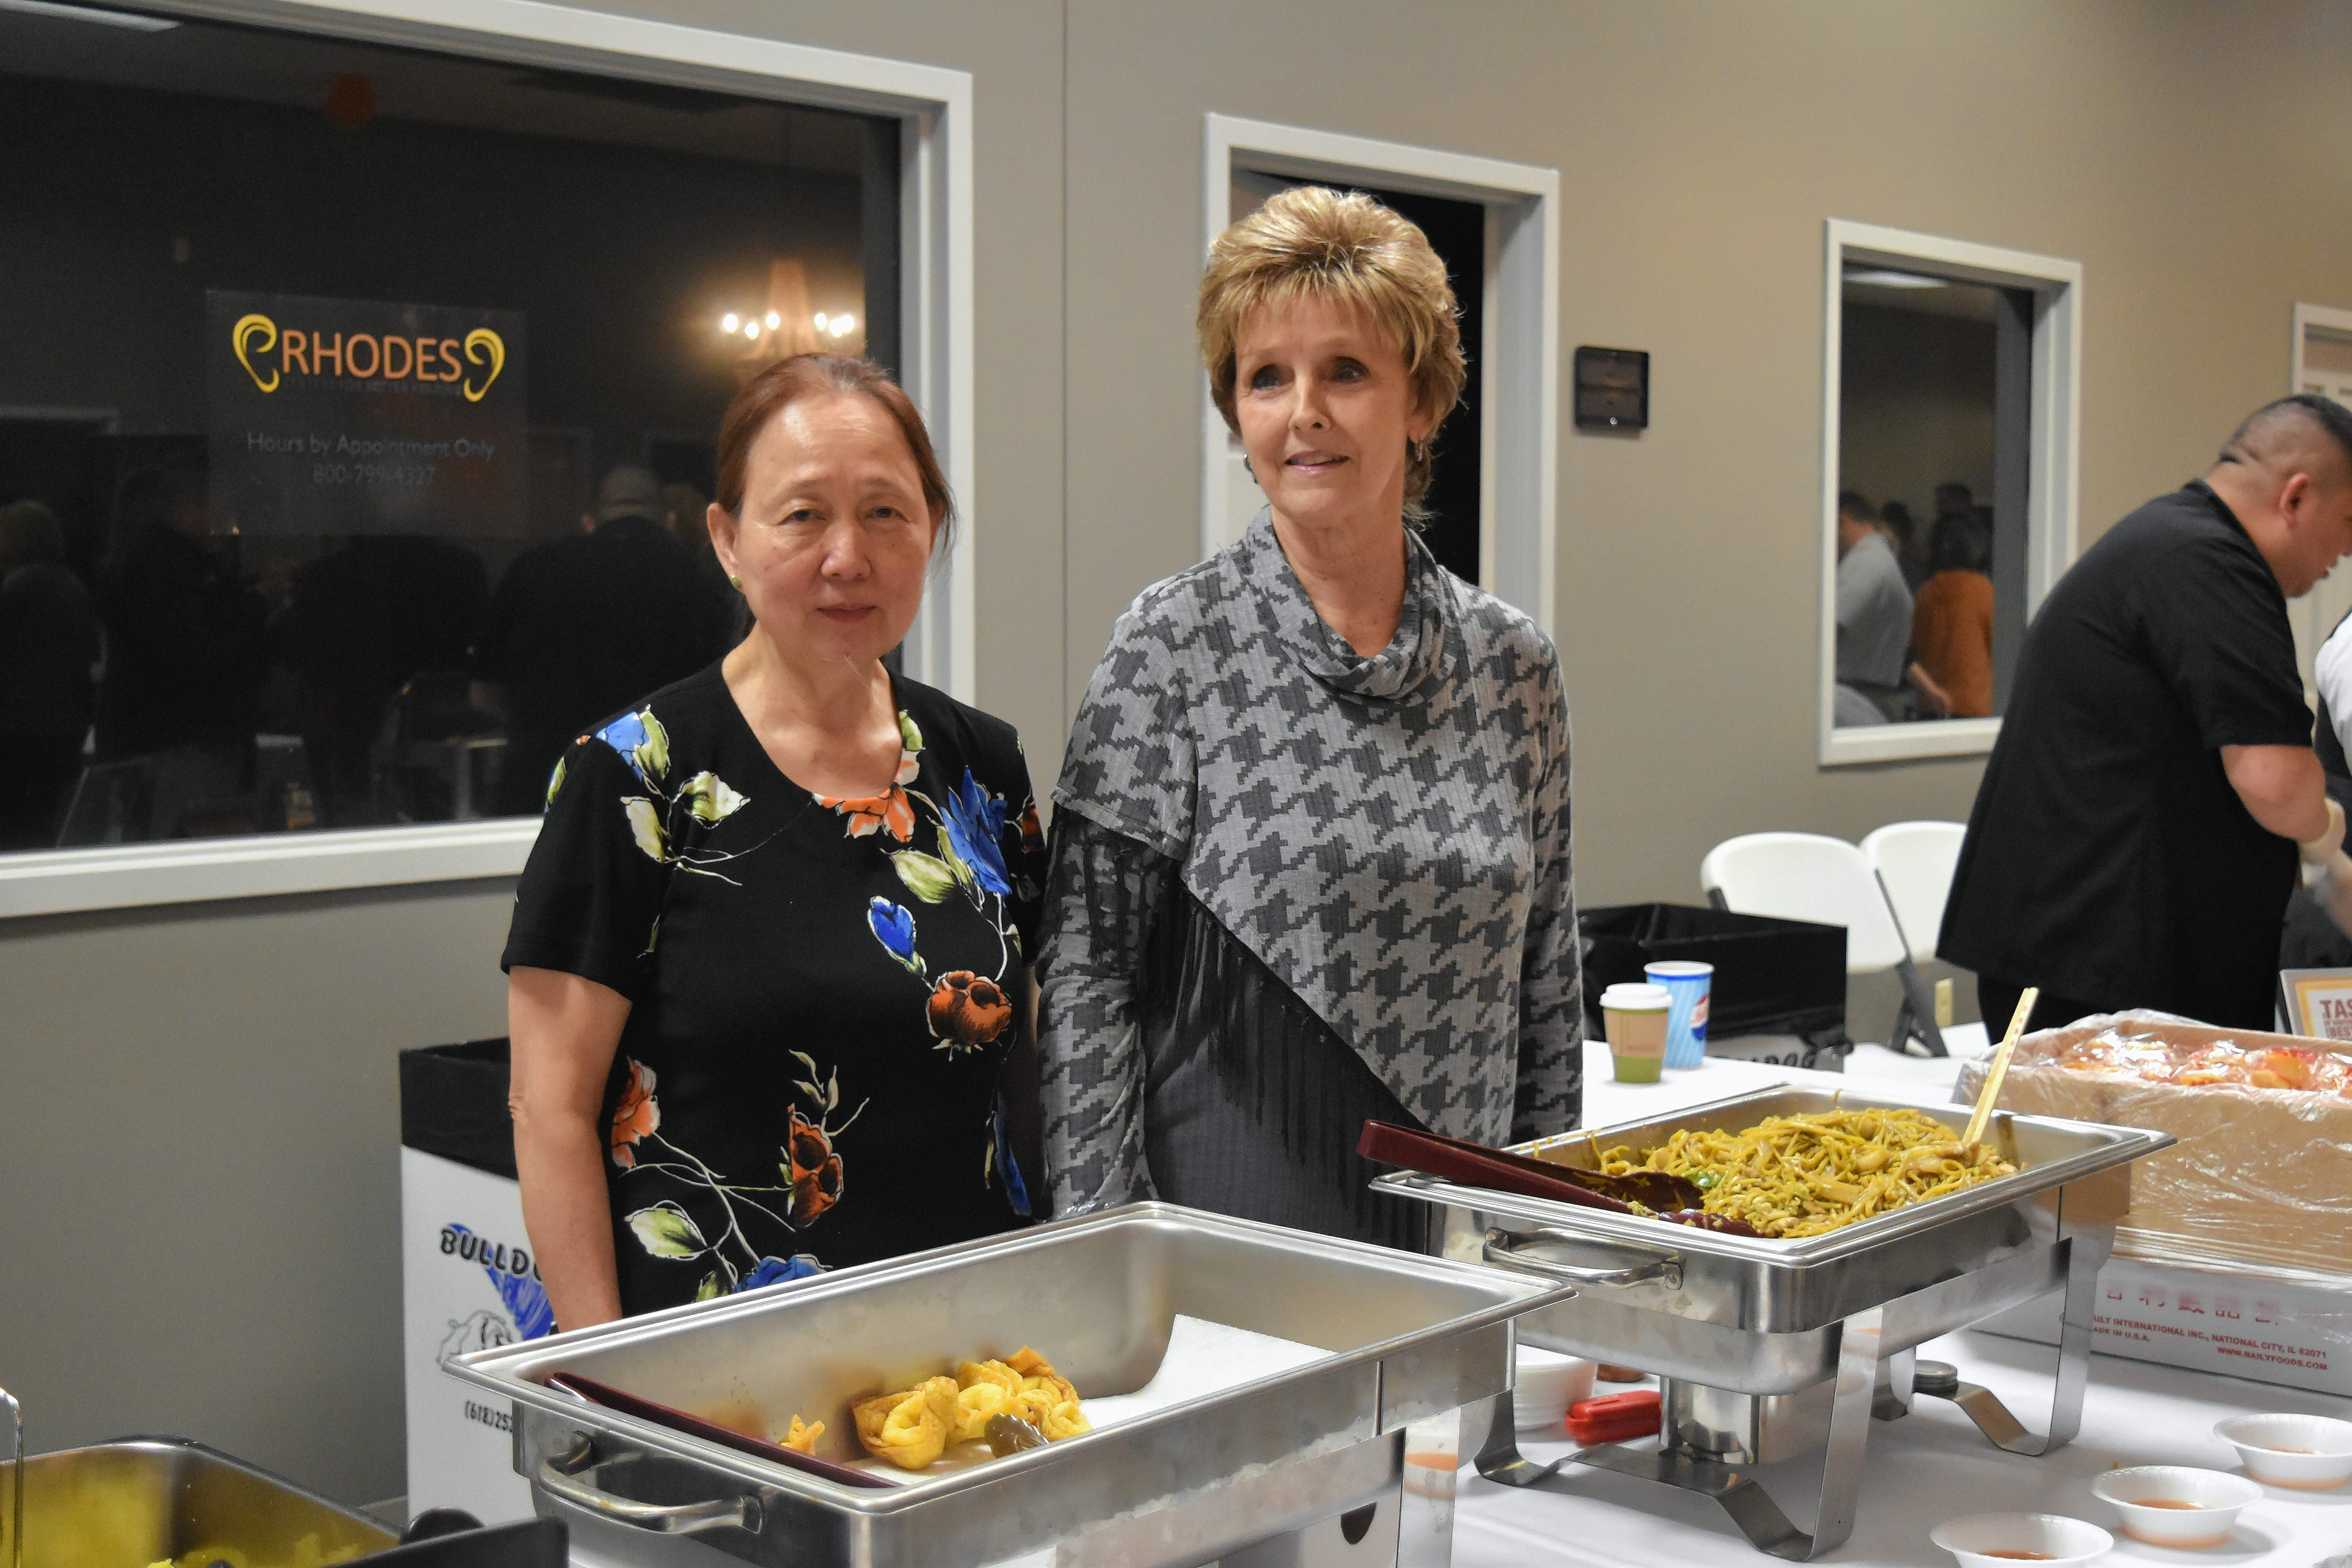 Lylen Thai and Sandie Ingram of Peking Palace in Harrisburg prepare to serve samples at Taste of Southern Illinois Sunday in Harrisburg.